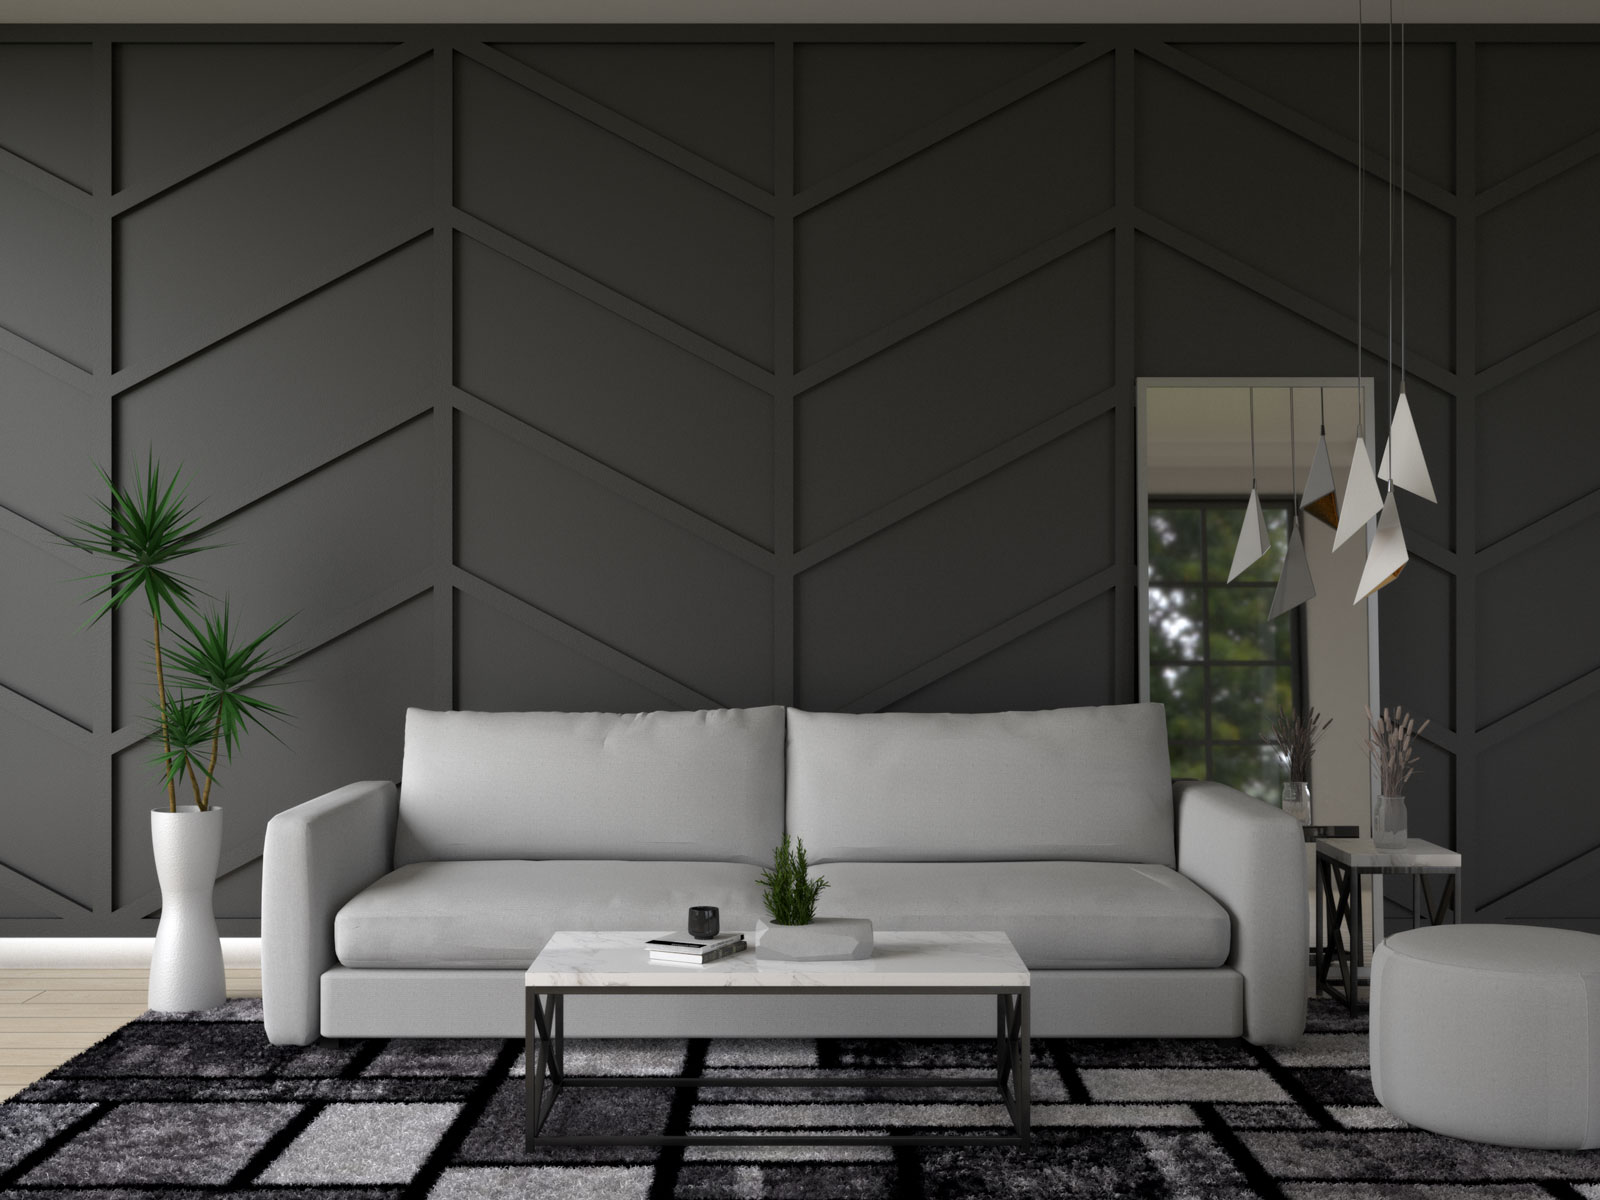 Living room with gray furniture and black wall